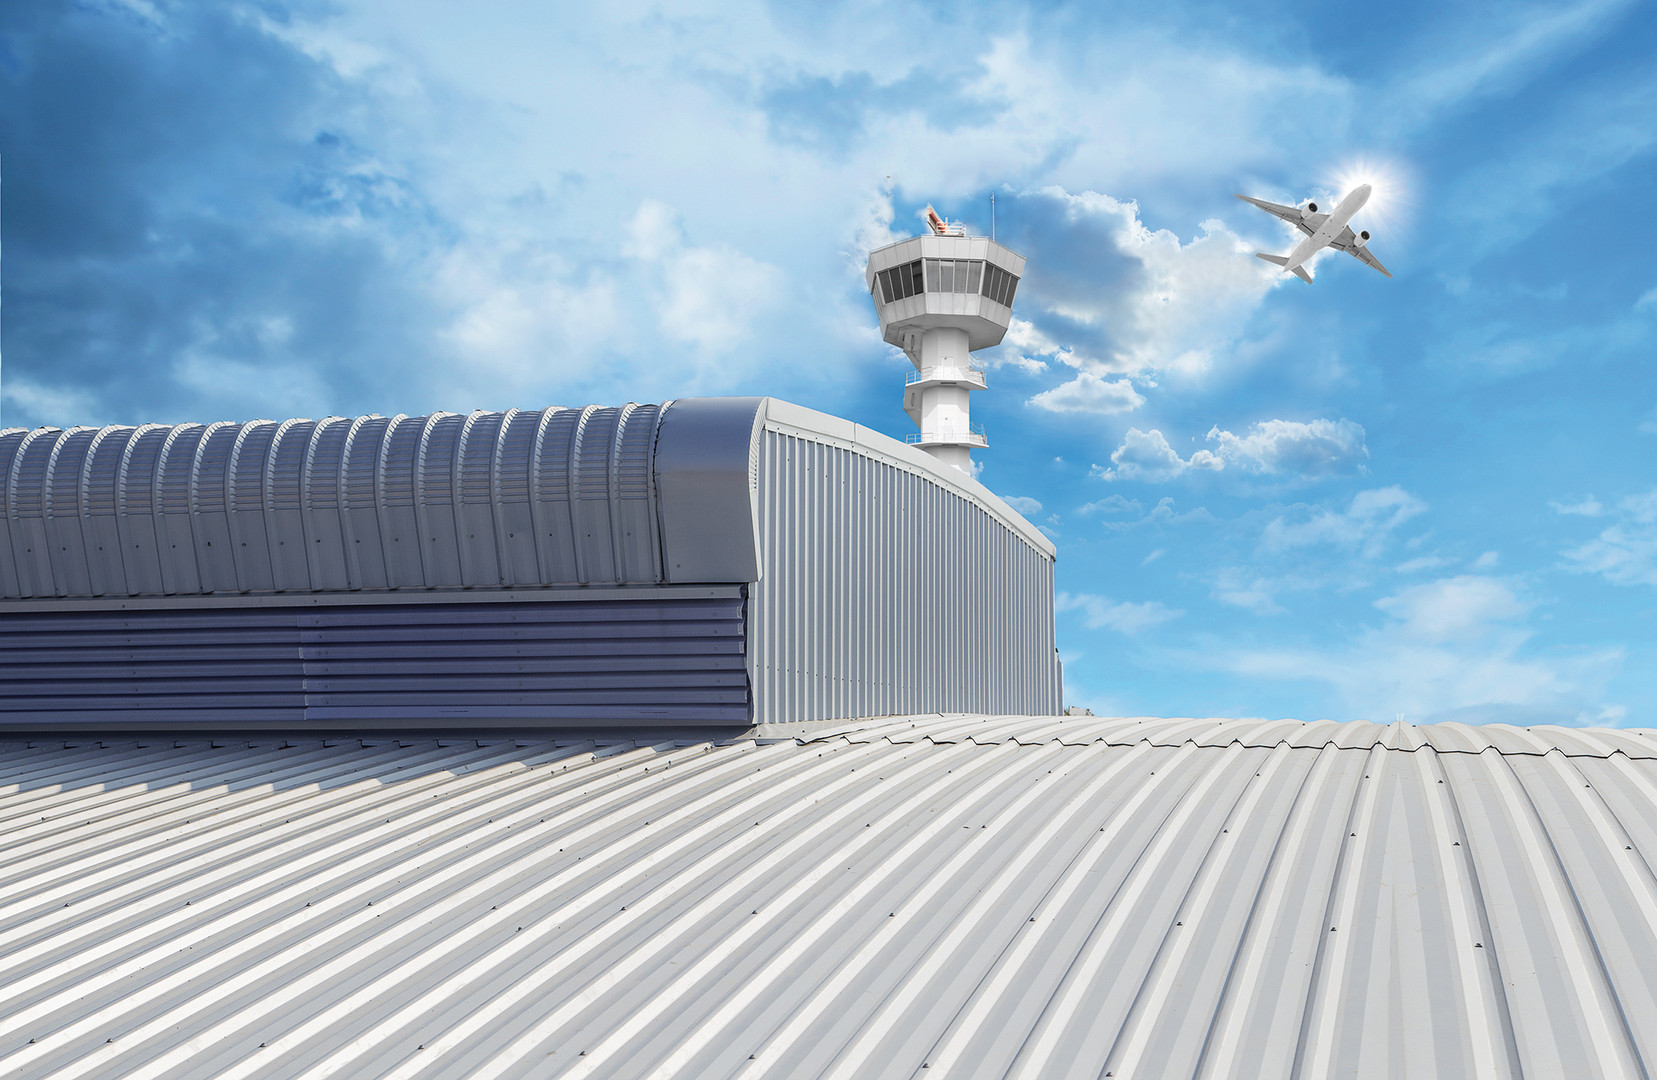 Airport Terminal Roof